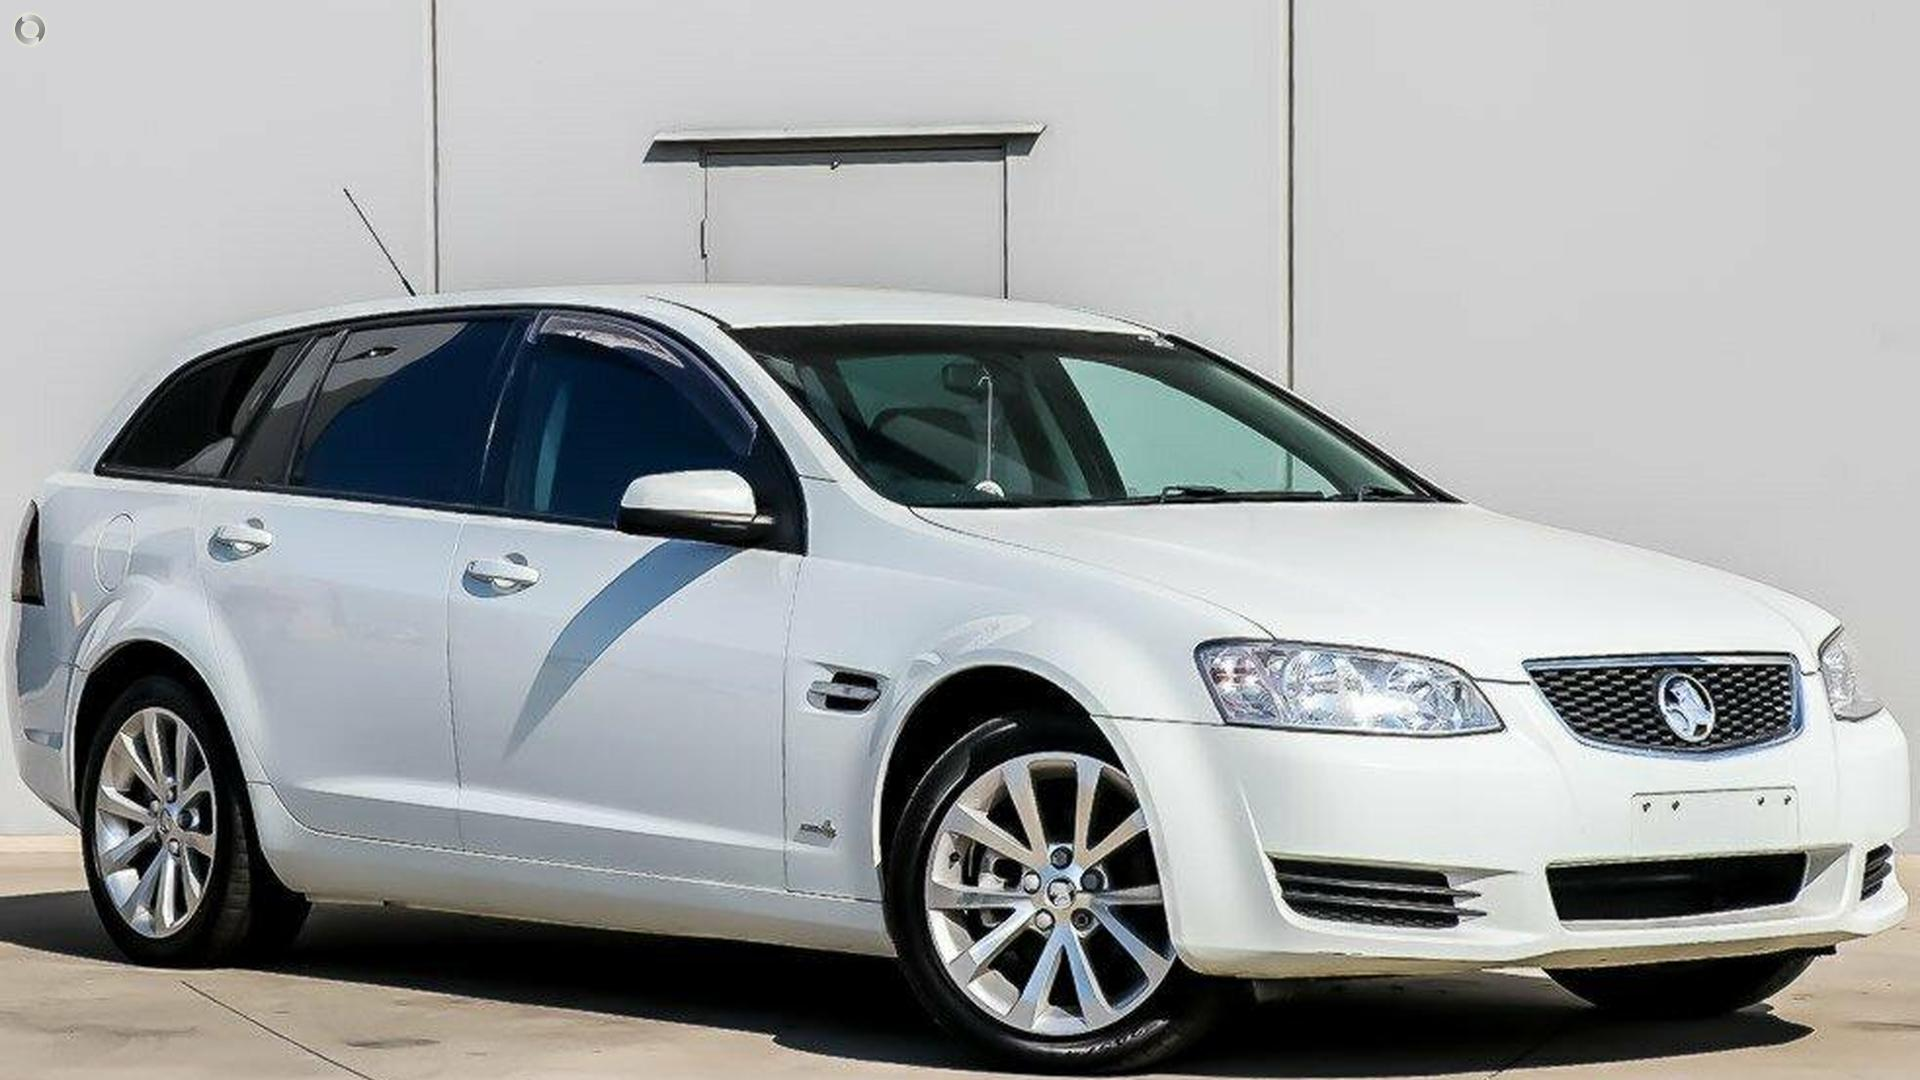 2011 Holden Commodore Omega VE Series II